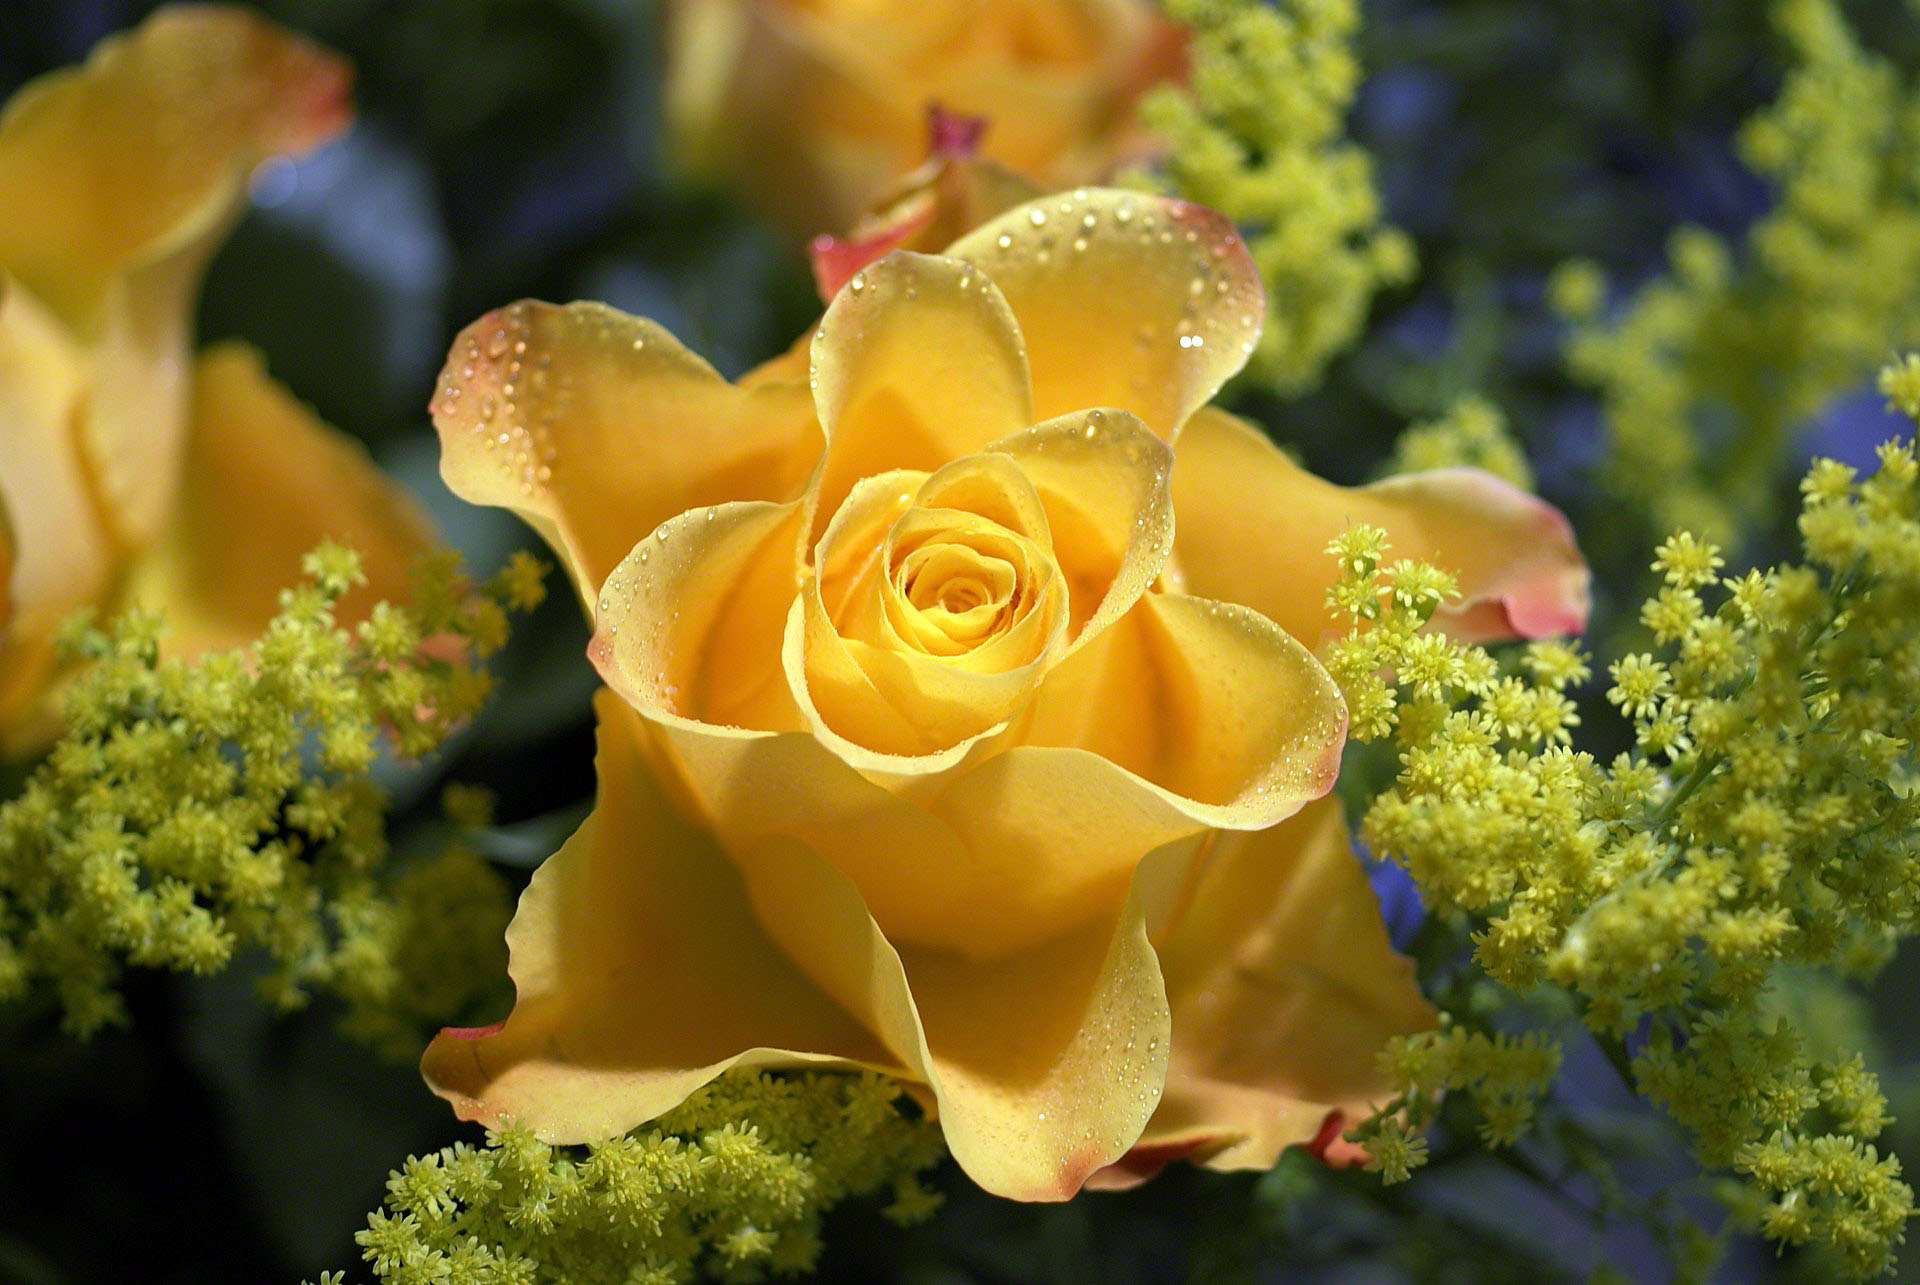 yellow rose with waterdrops